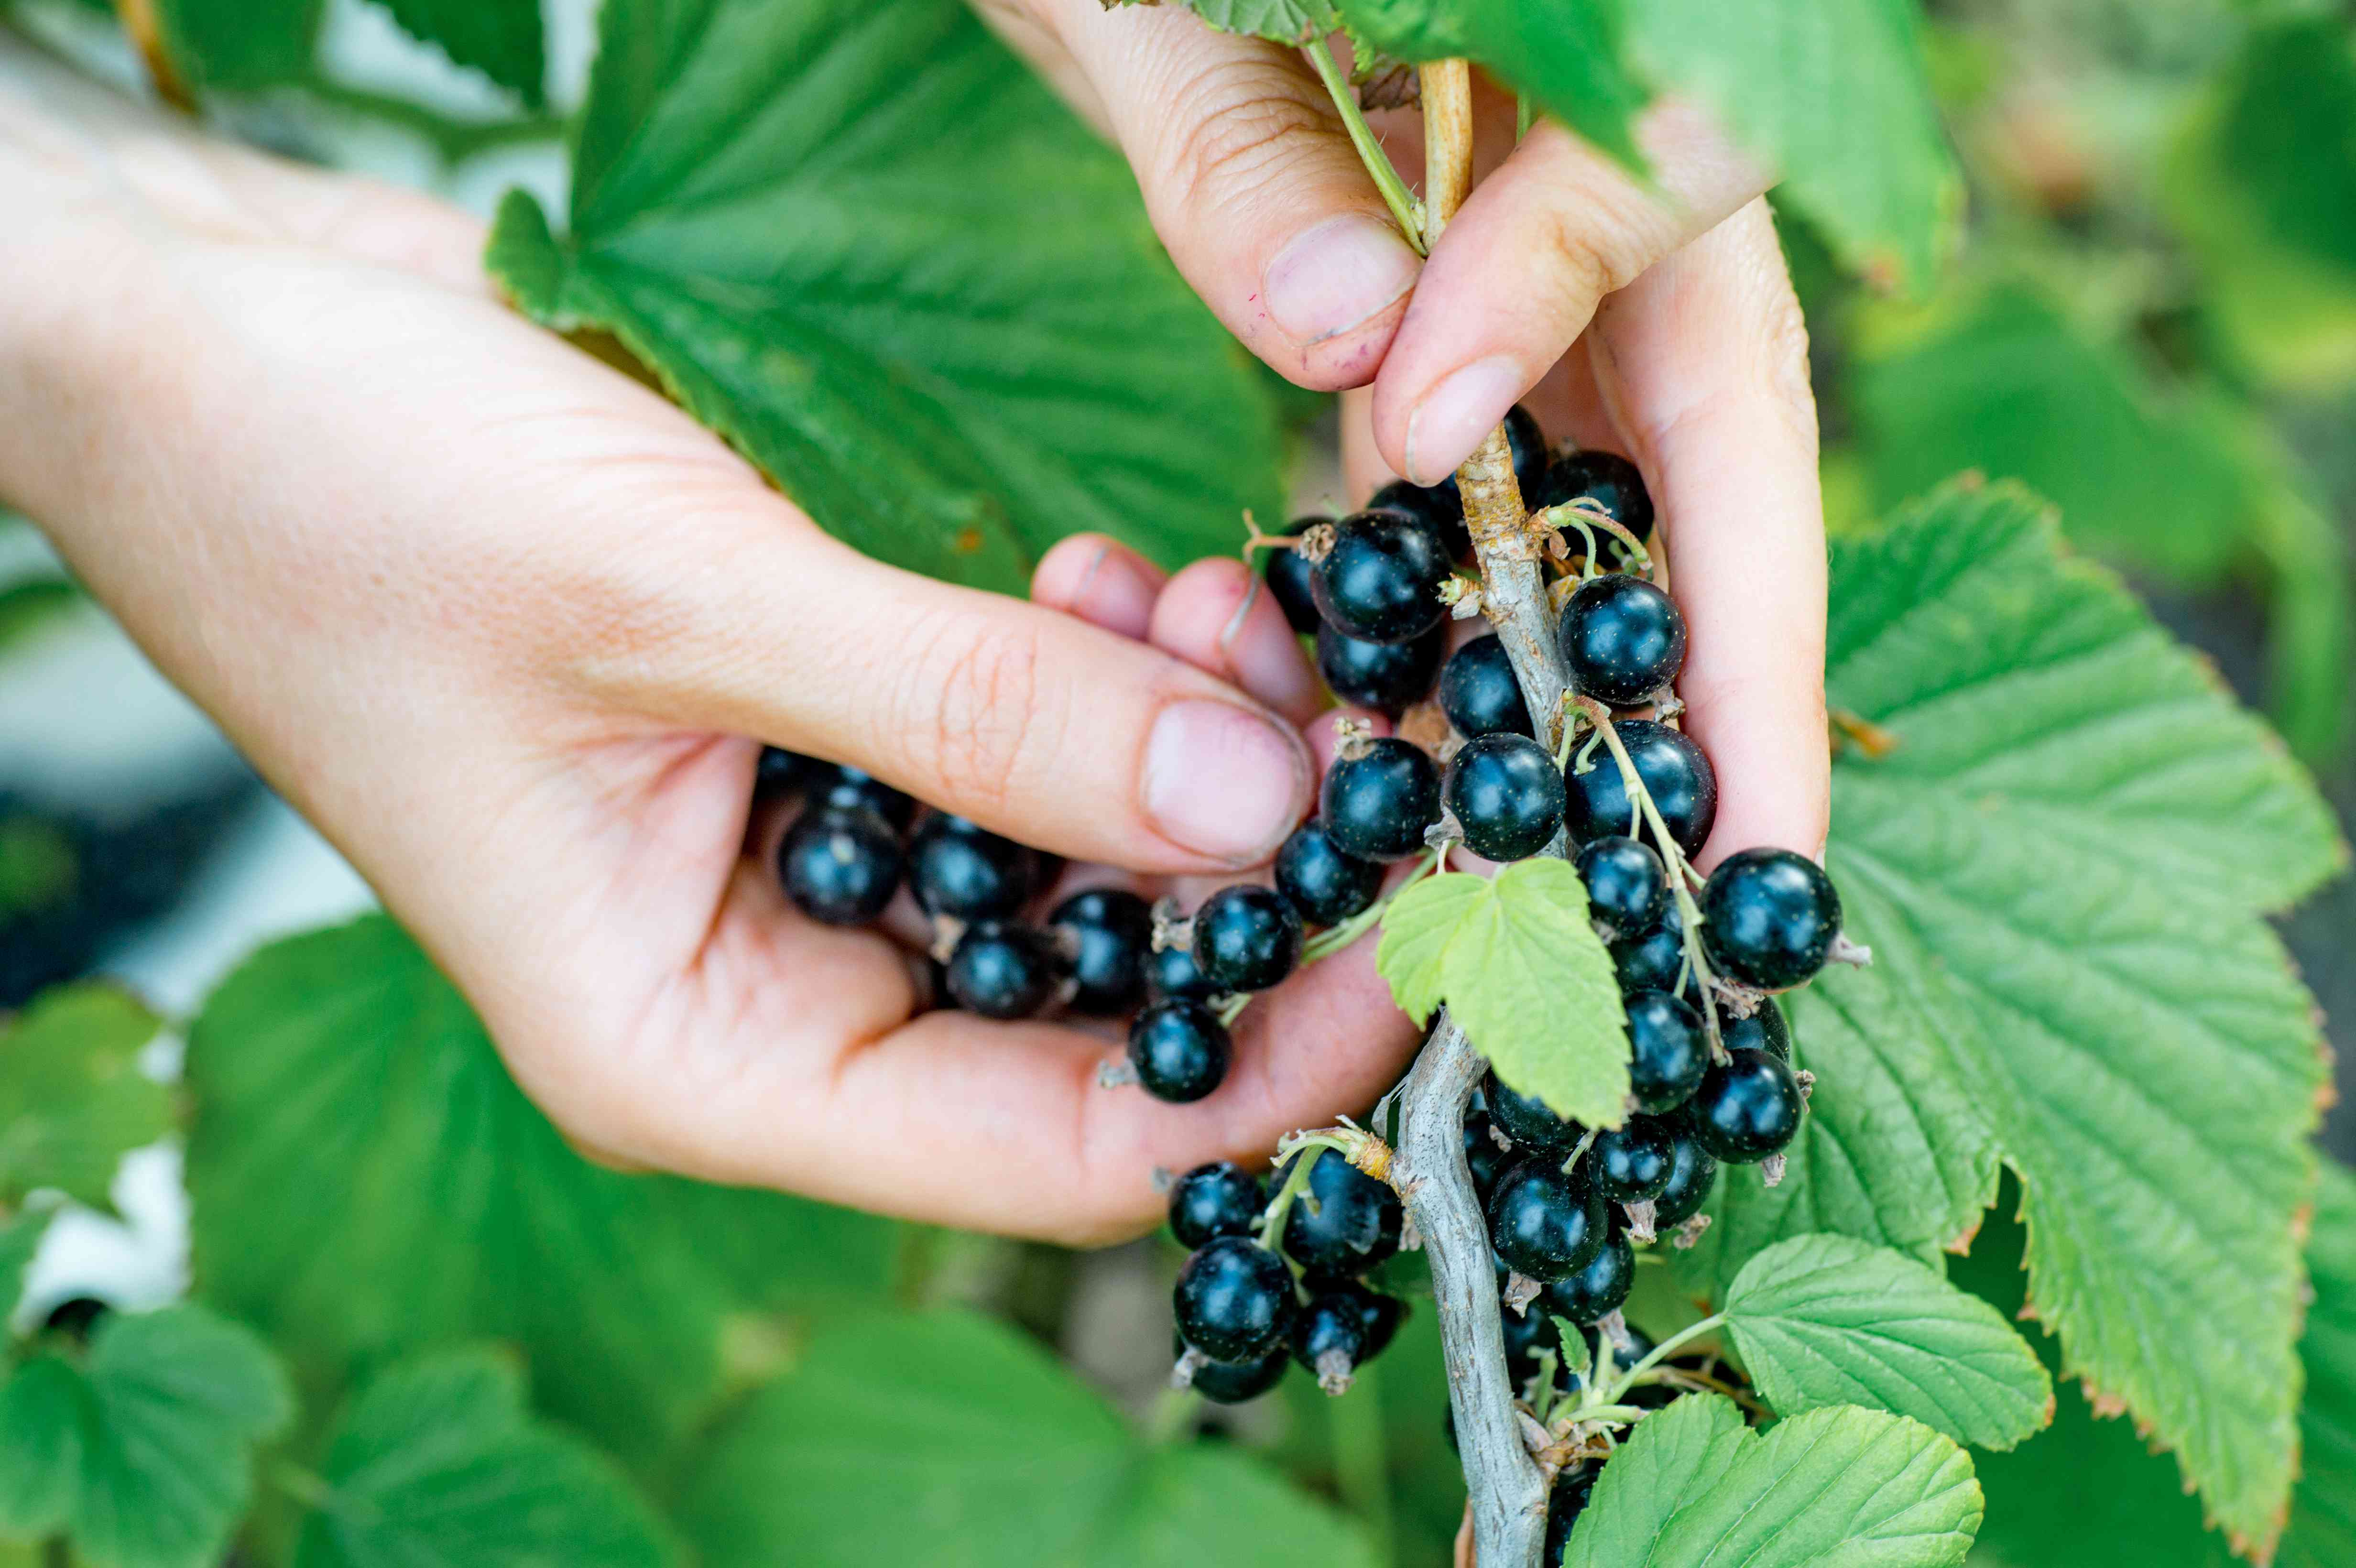 Farmer's hands collecting ripe blackcurrant from the bush